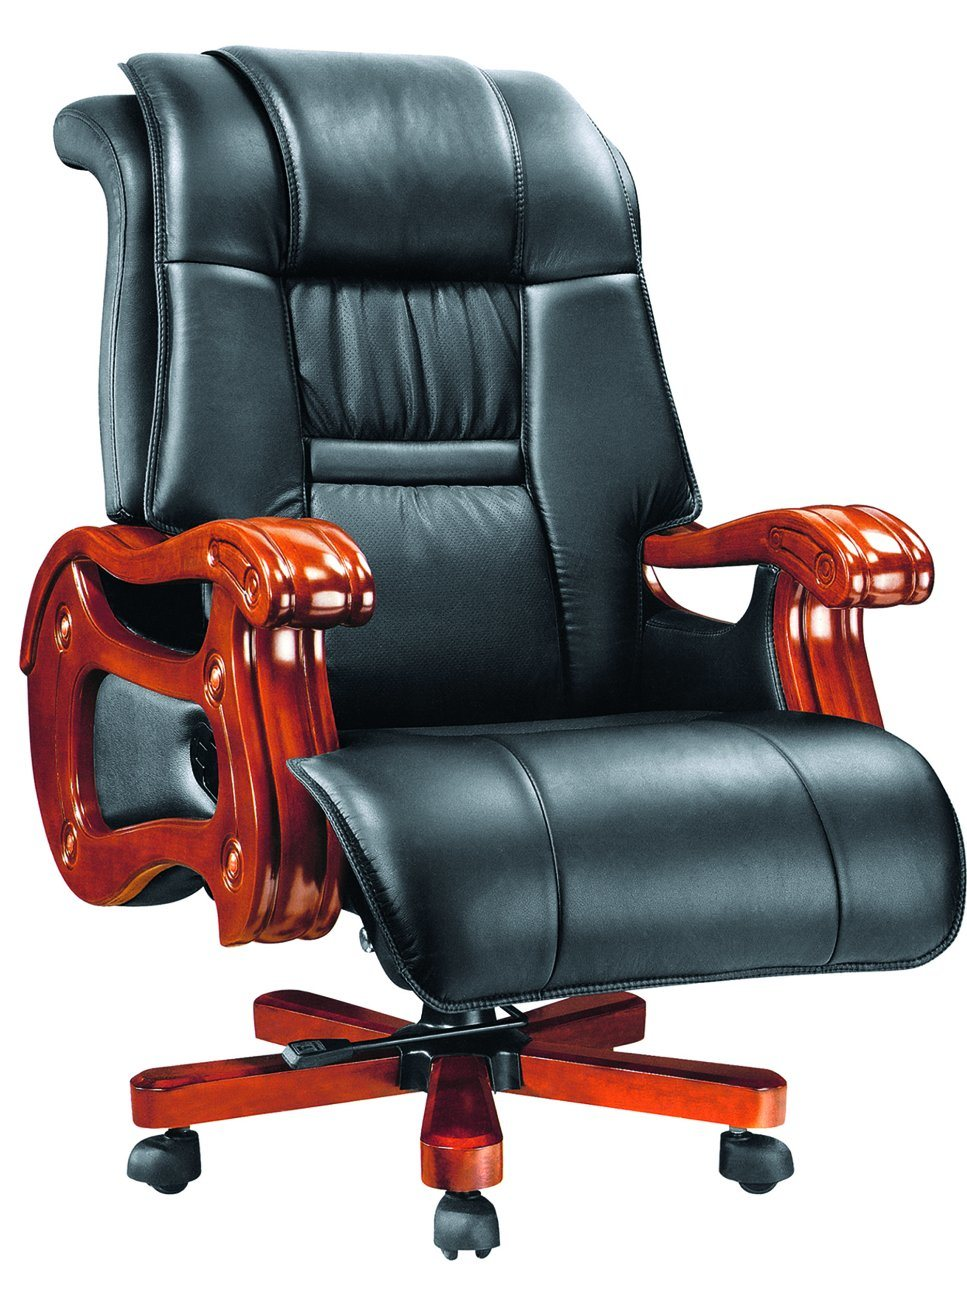 High End Leather Executive Office Chair